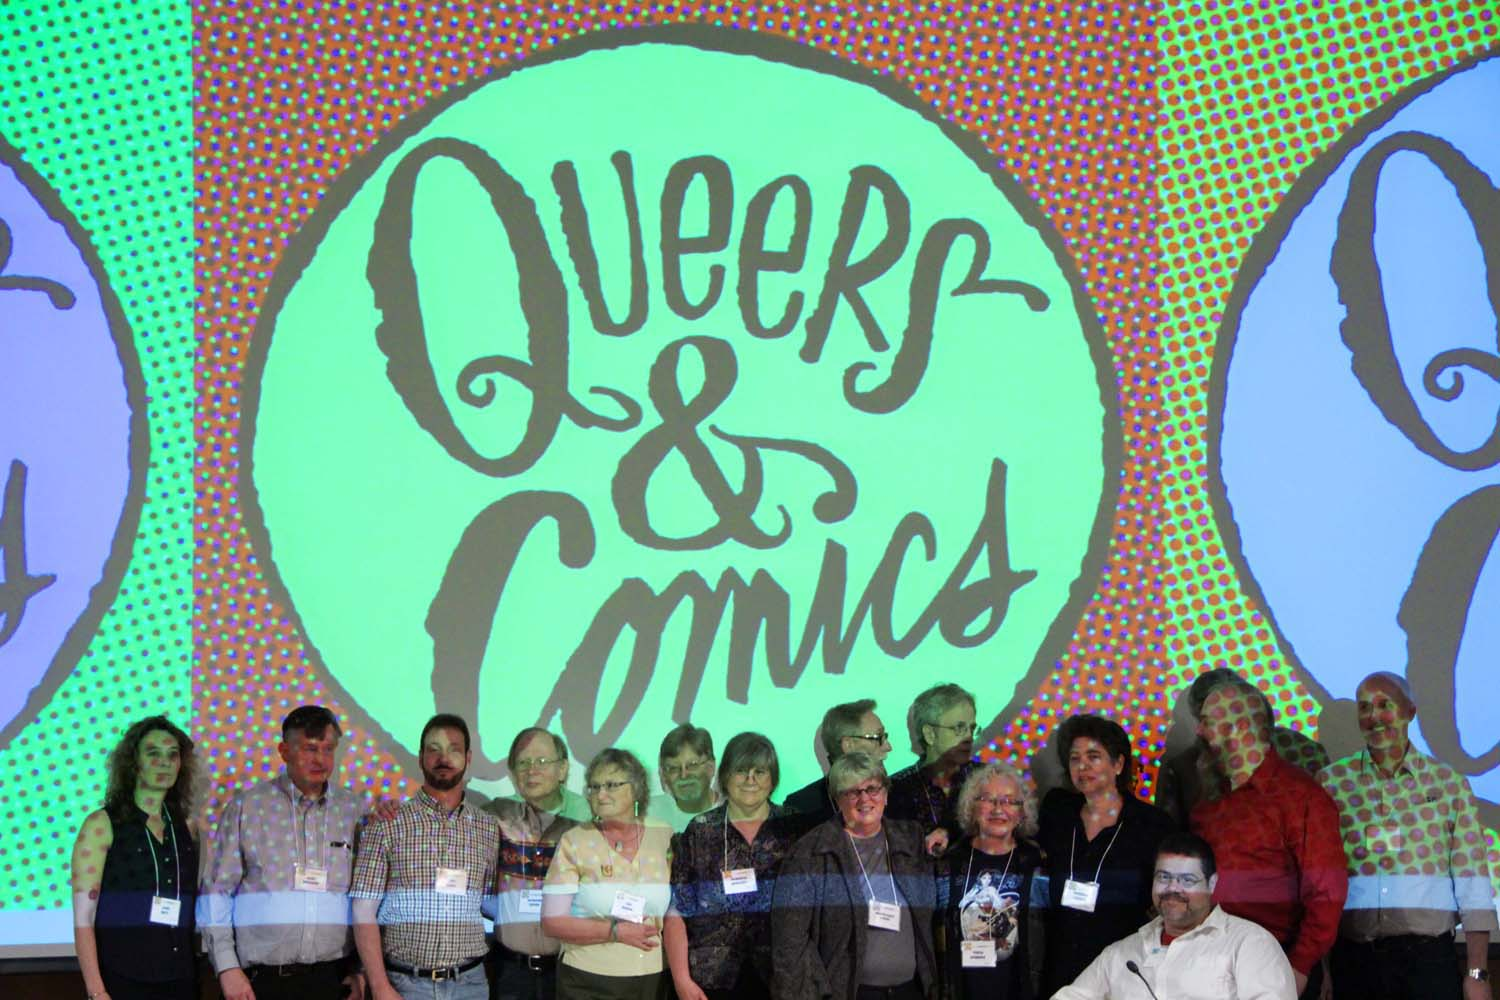 Gay Comix(cs) Reunion. Editors, publisher, and contributors. Q&C 2015, NYC.